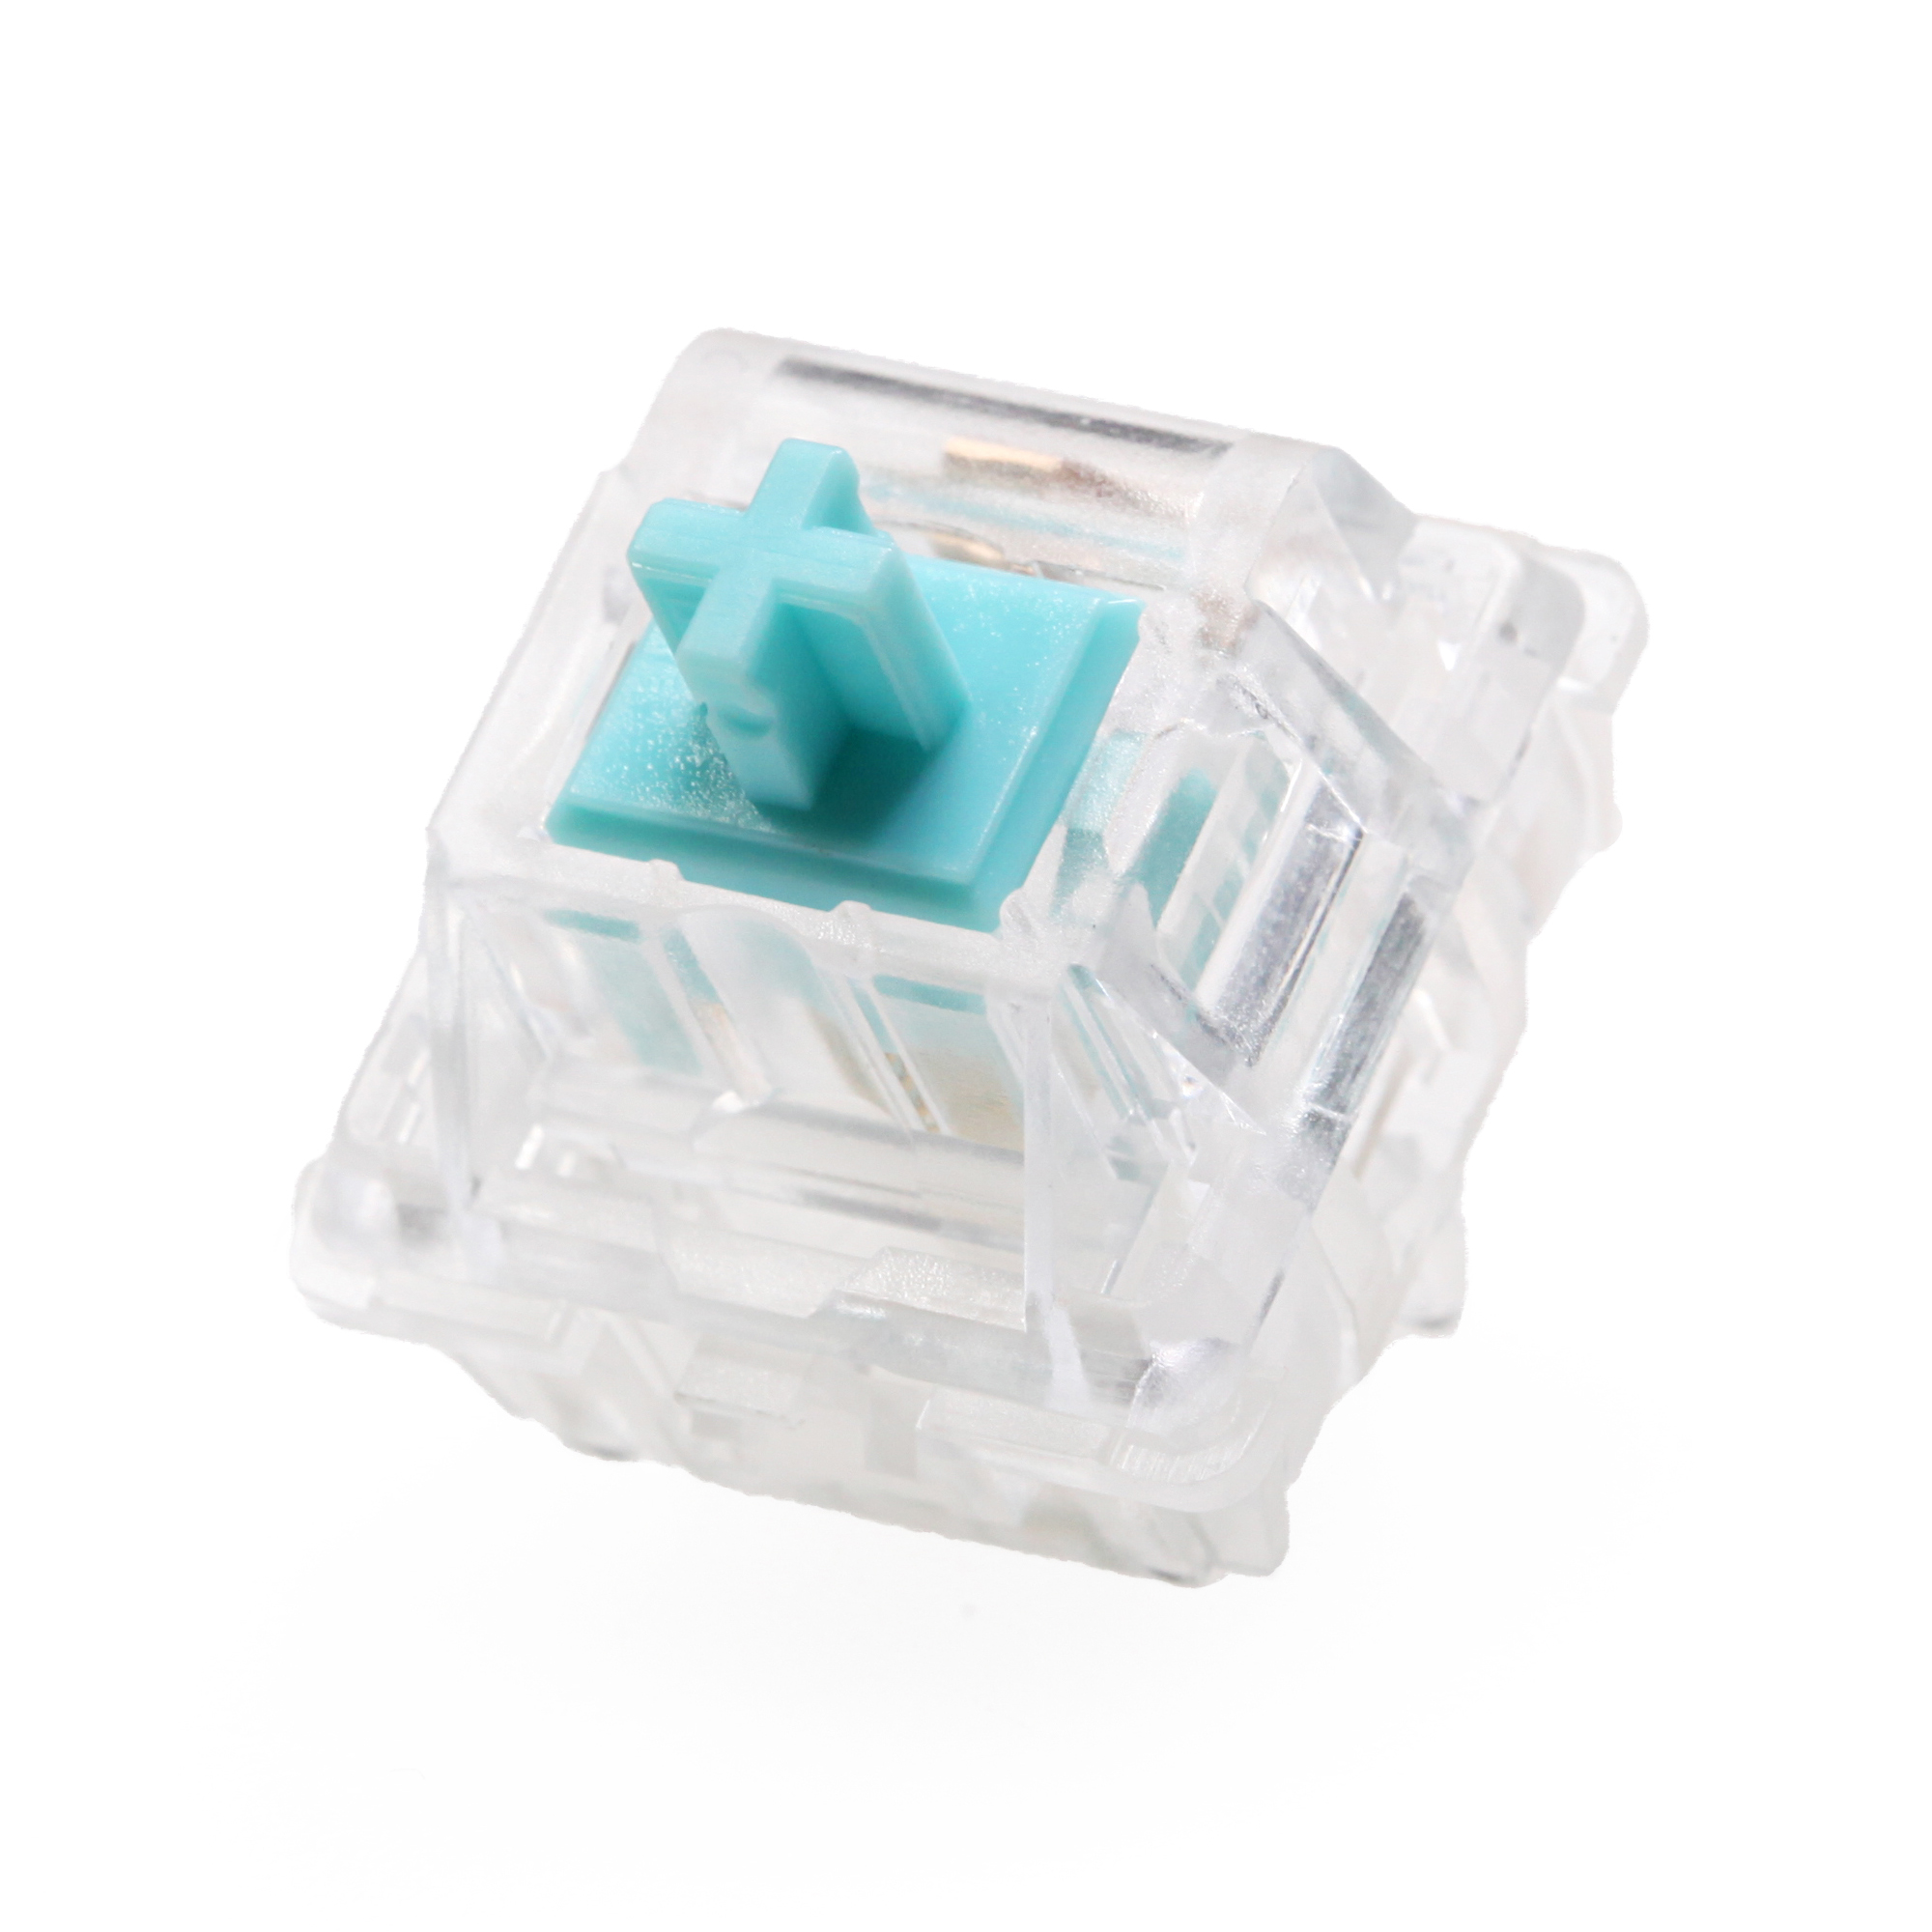 EVERGLIDE SWITCH Tourmaline Blue Cyan  Mx Stem With Mx Stem For Mechanical Keyboard 5pin 45g Linear